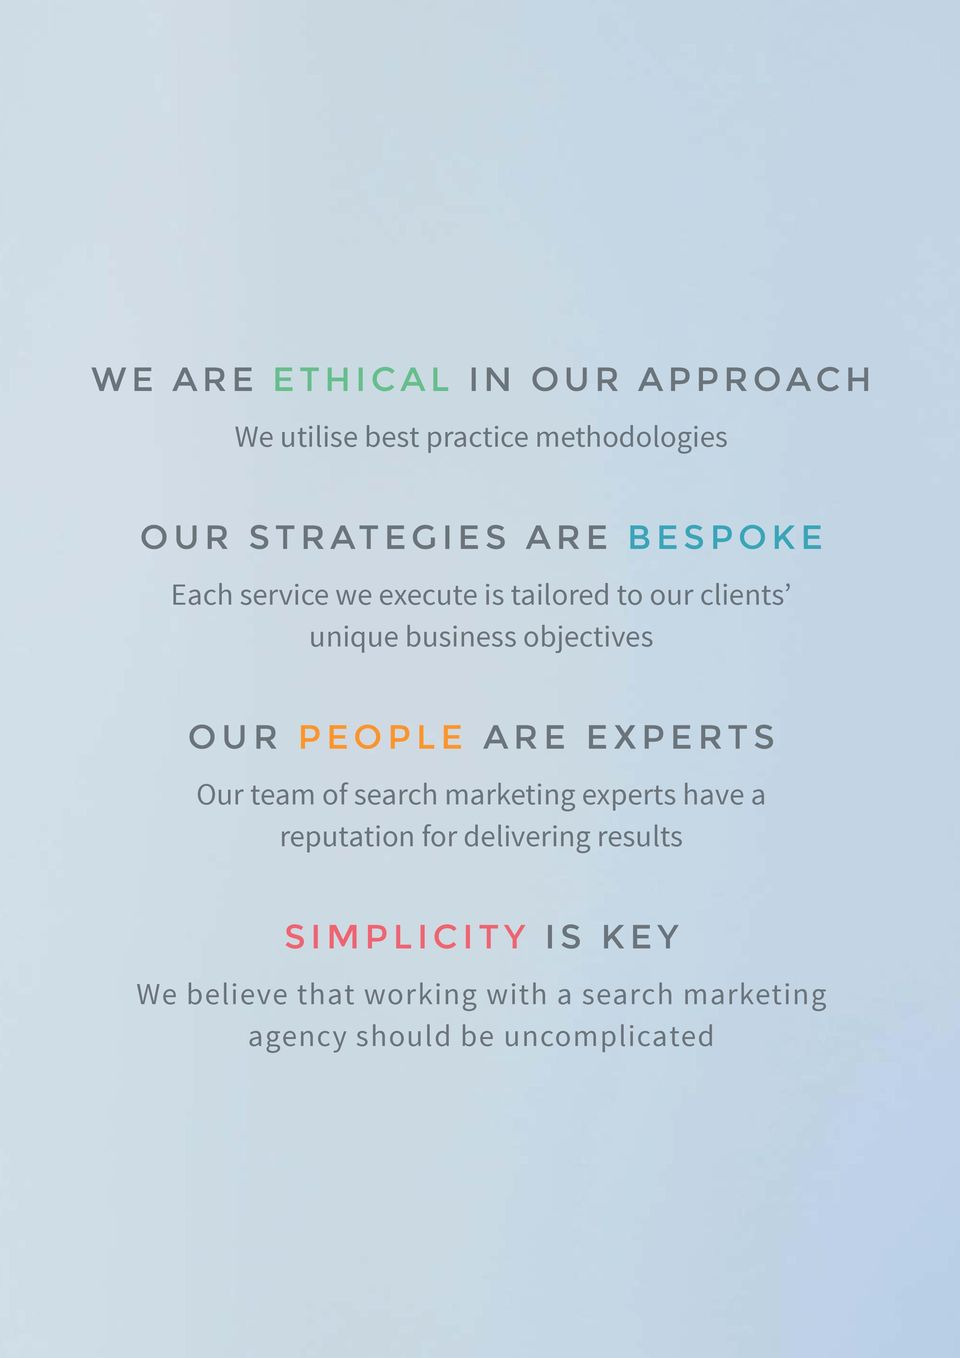 PEOPLE ARE EXPERTS Our team of search marketing experts have a reputation for delivering